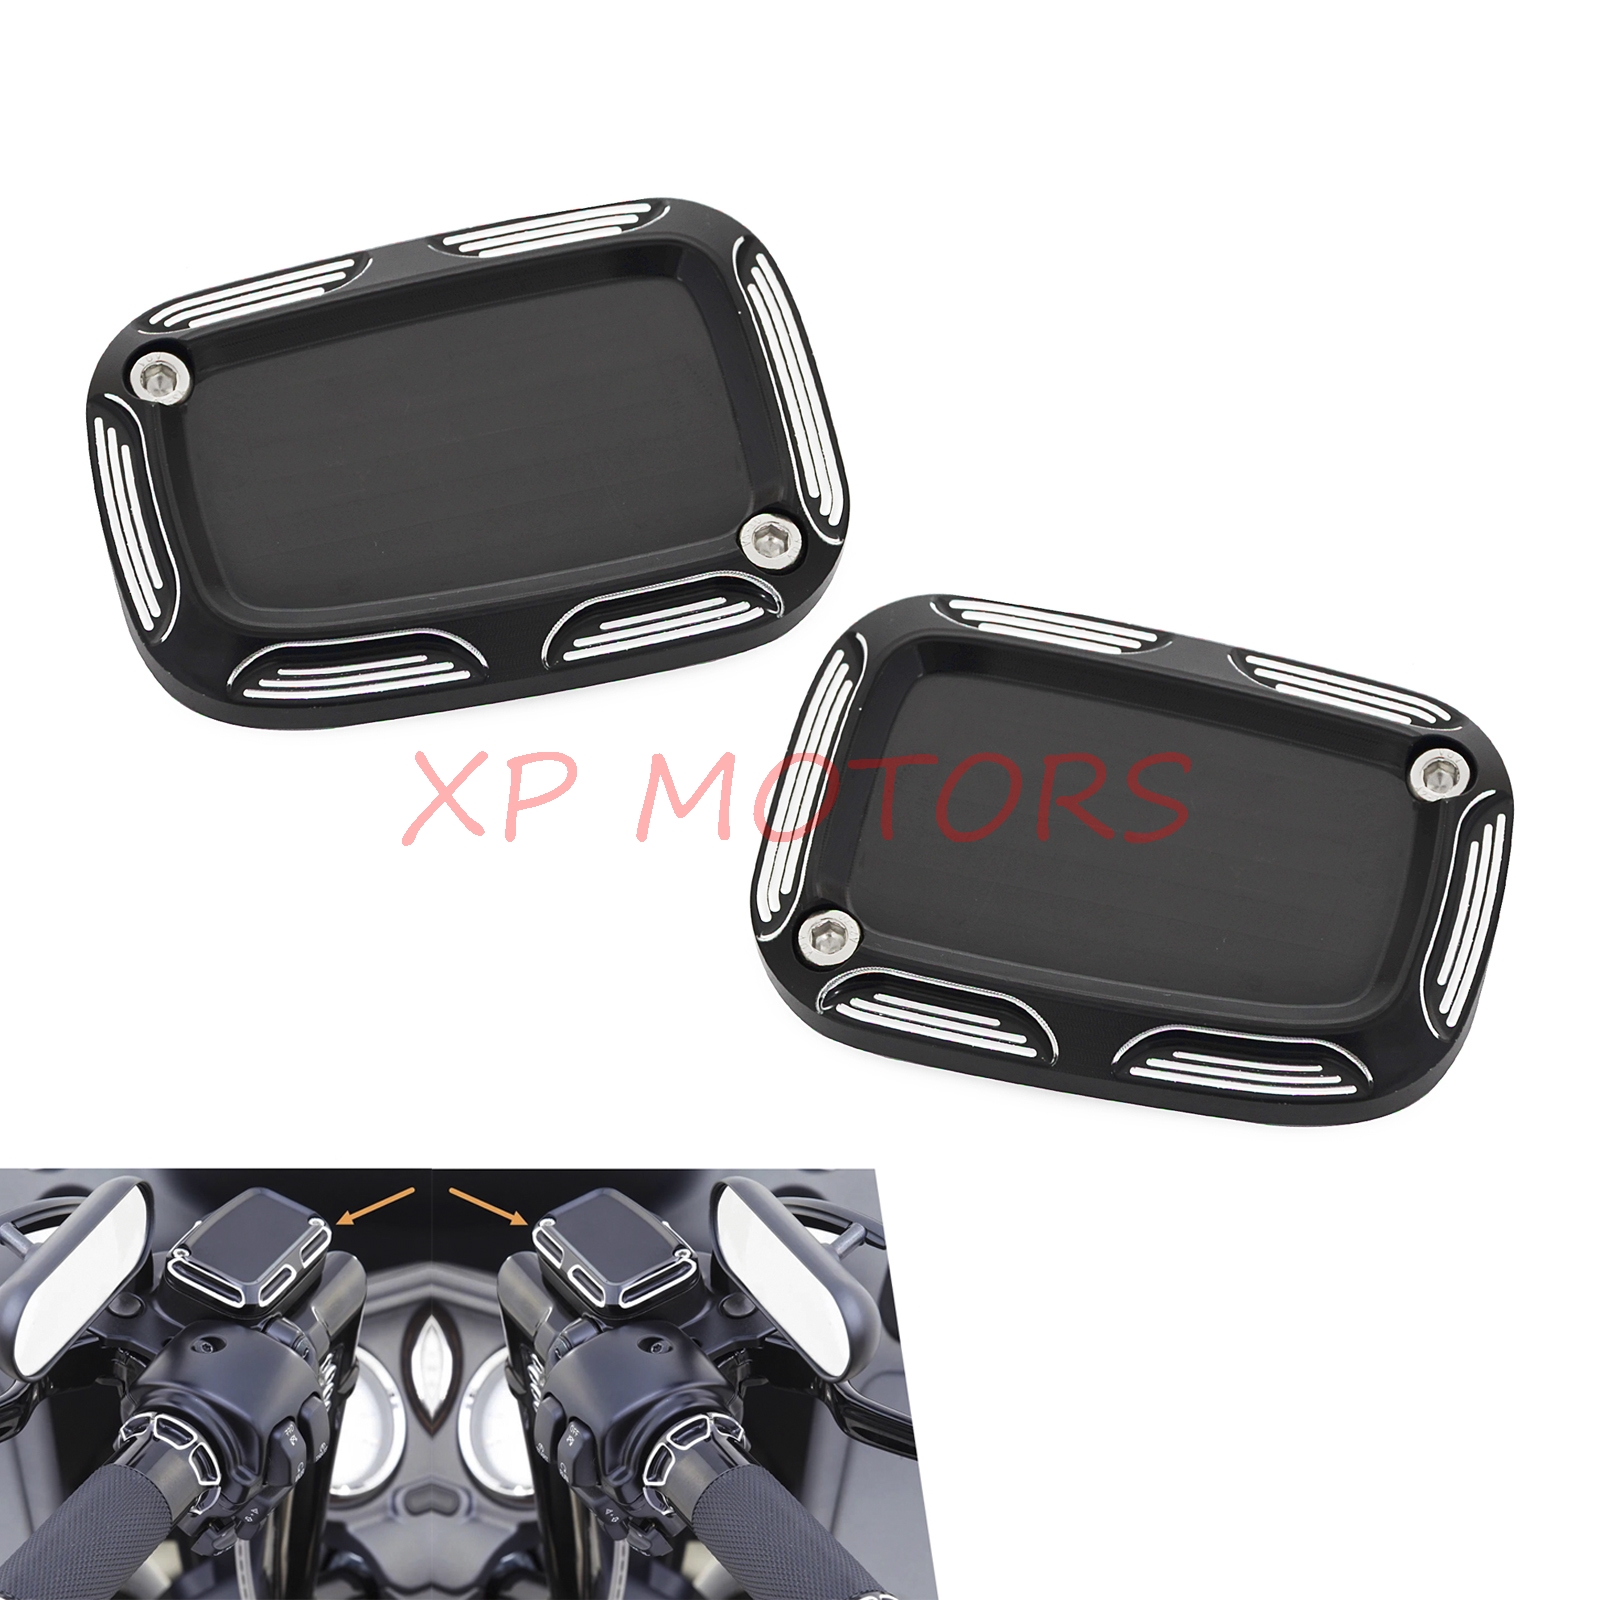 Left&Right Clutch Master Cylinder Cover For 06-later VRSC 14-16 Touring Models&Some Harley Models Equipped With Hydraulic Clutch 45 days warranty laptop motherboard for hp pavilion dv6000 443774 001 for amd cpu with non integrated graphics card 100% tested